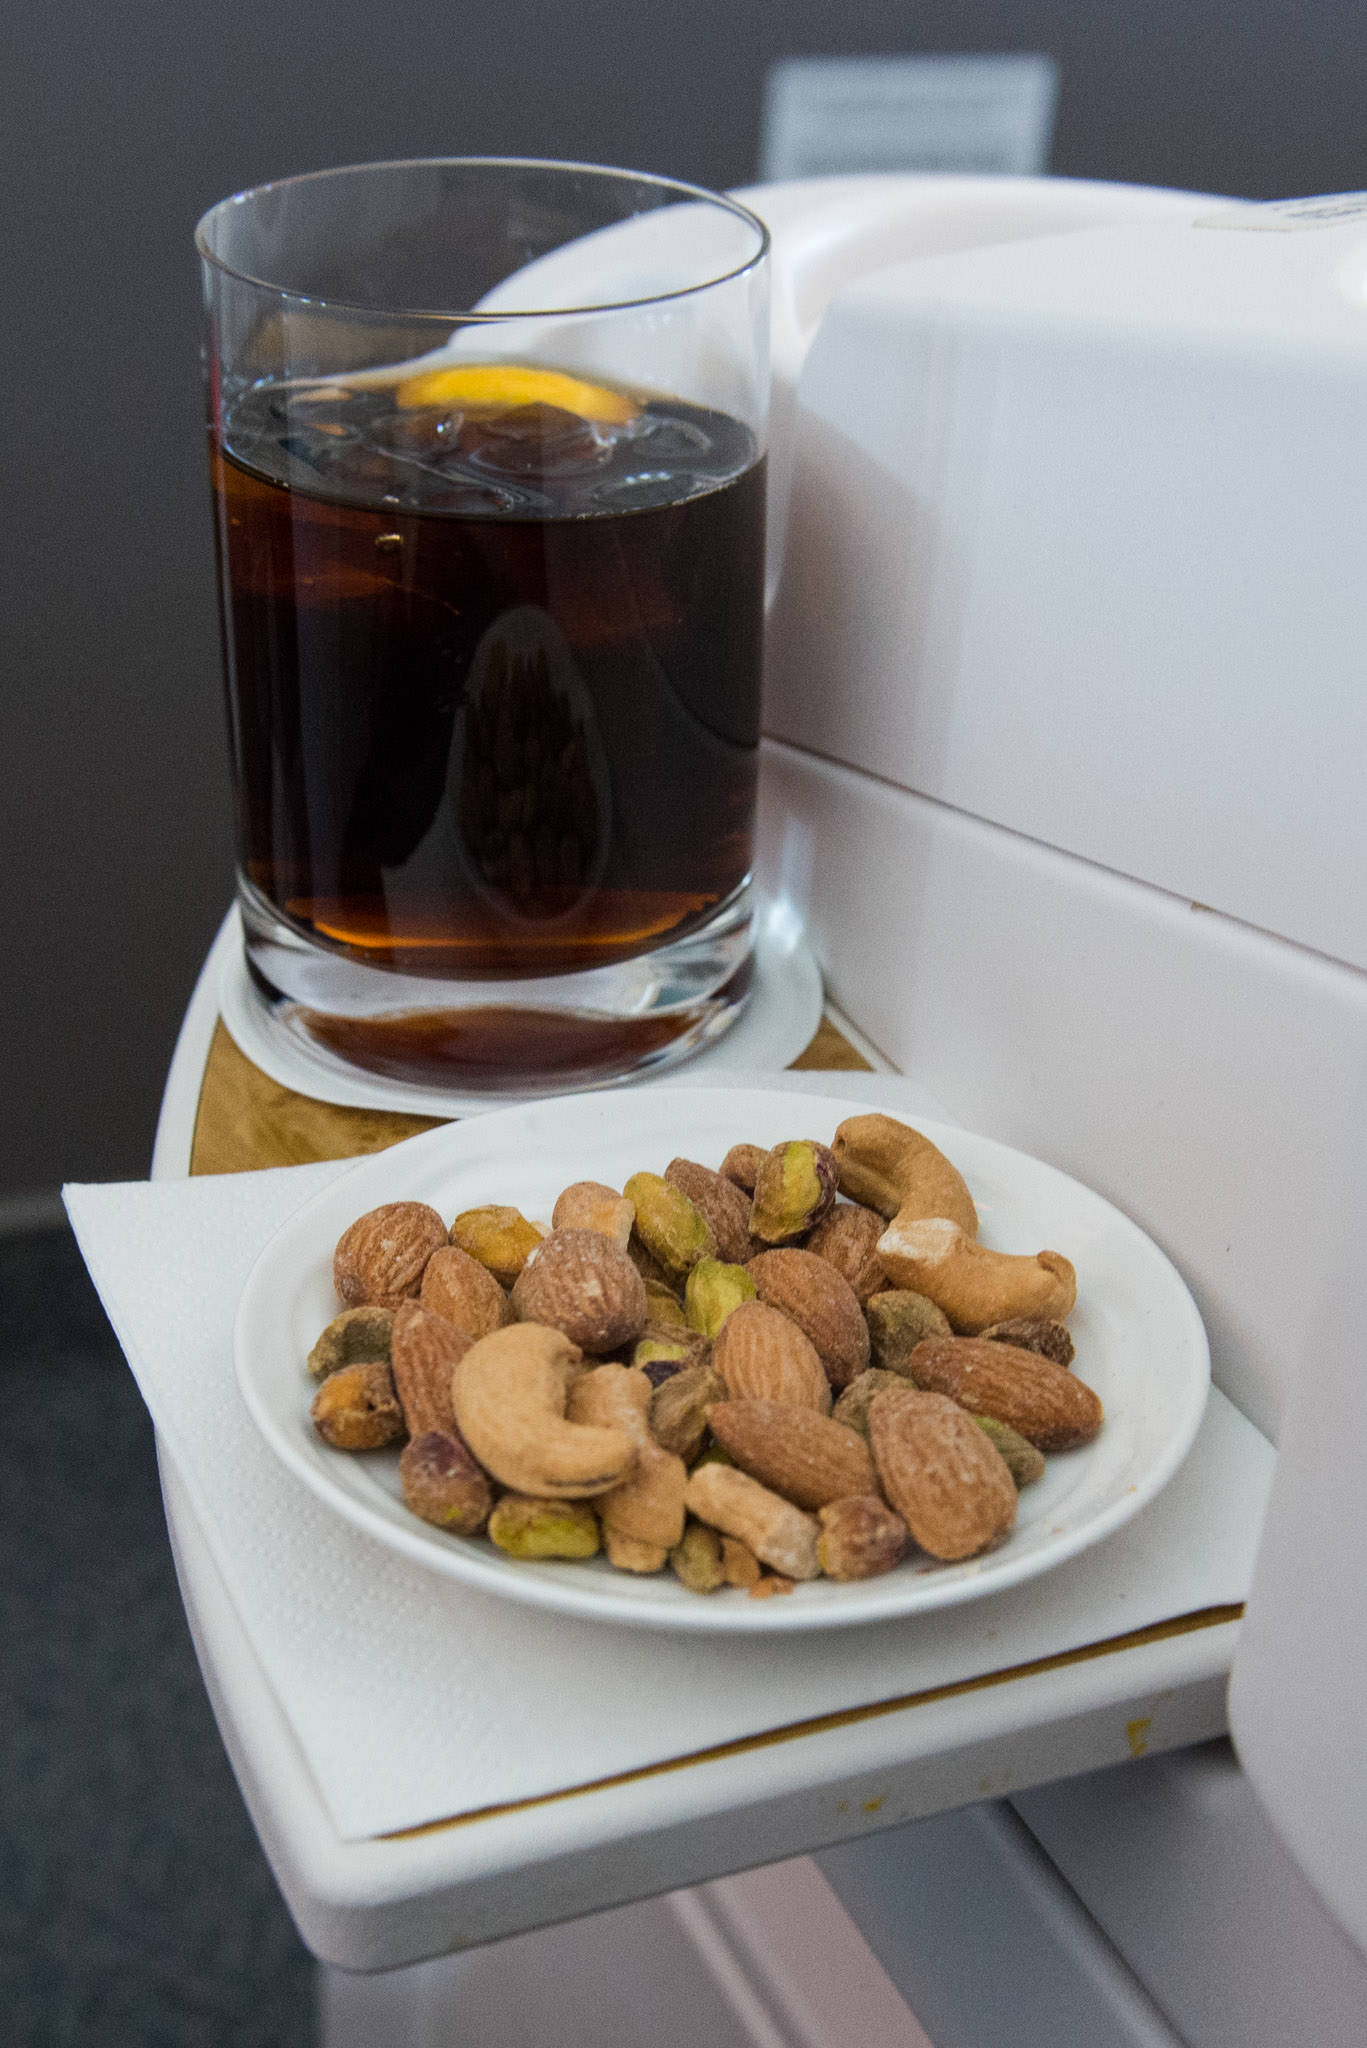 A drink and nuts as soon as I'm seated